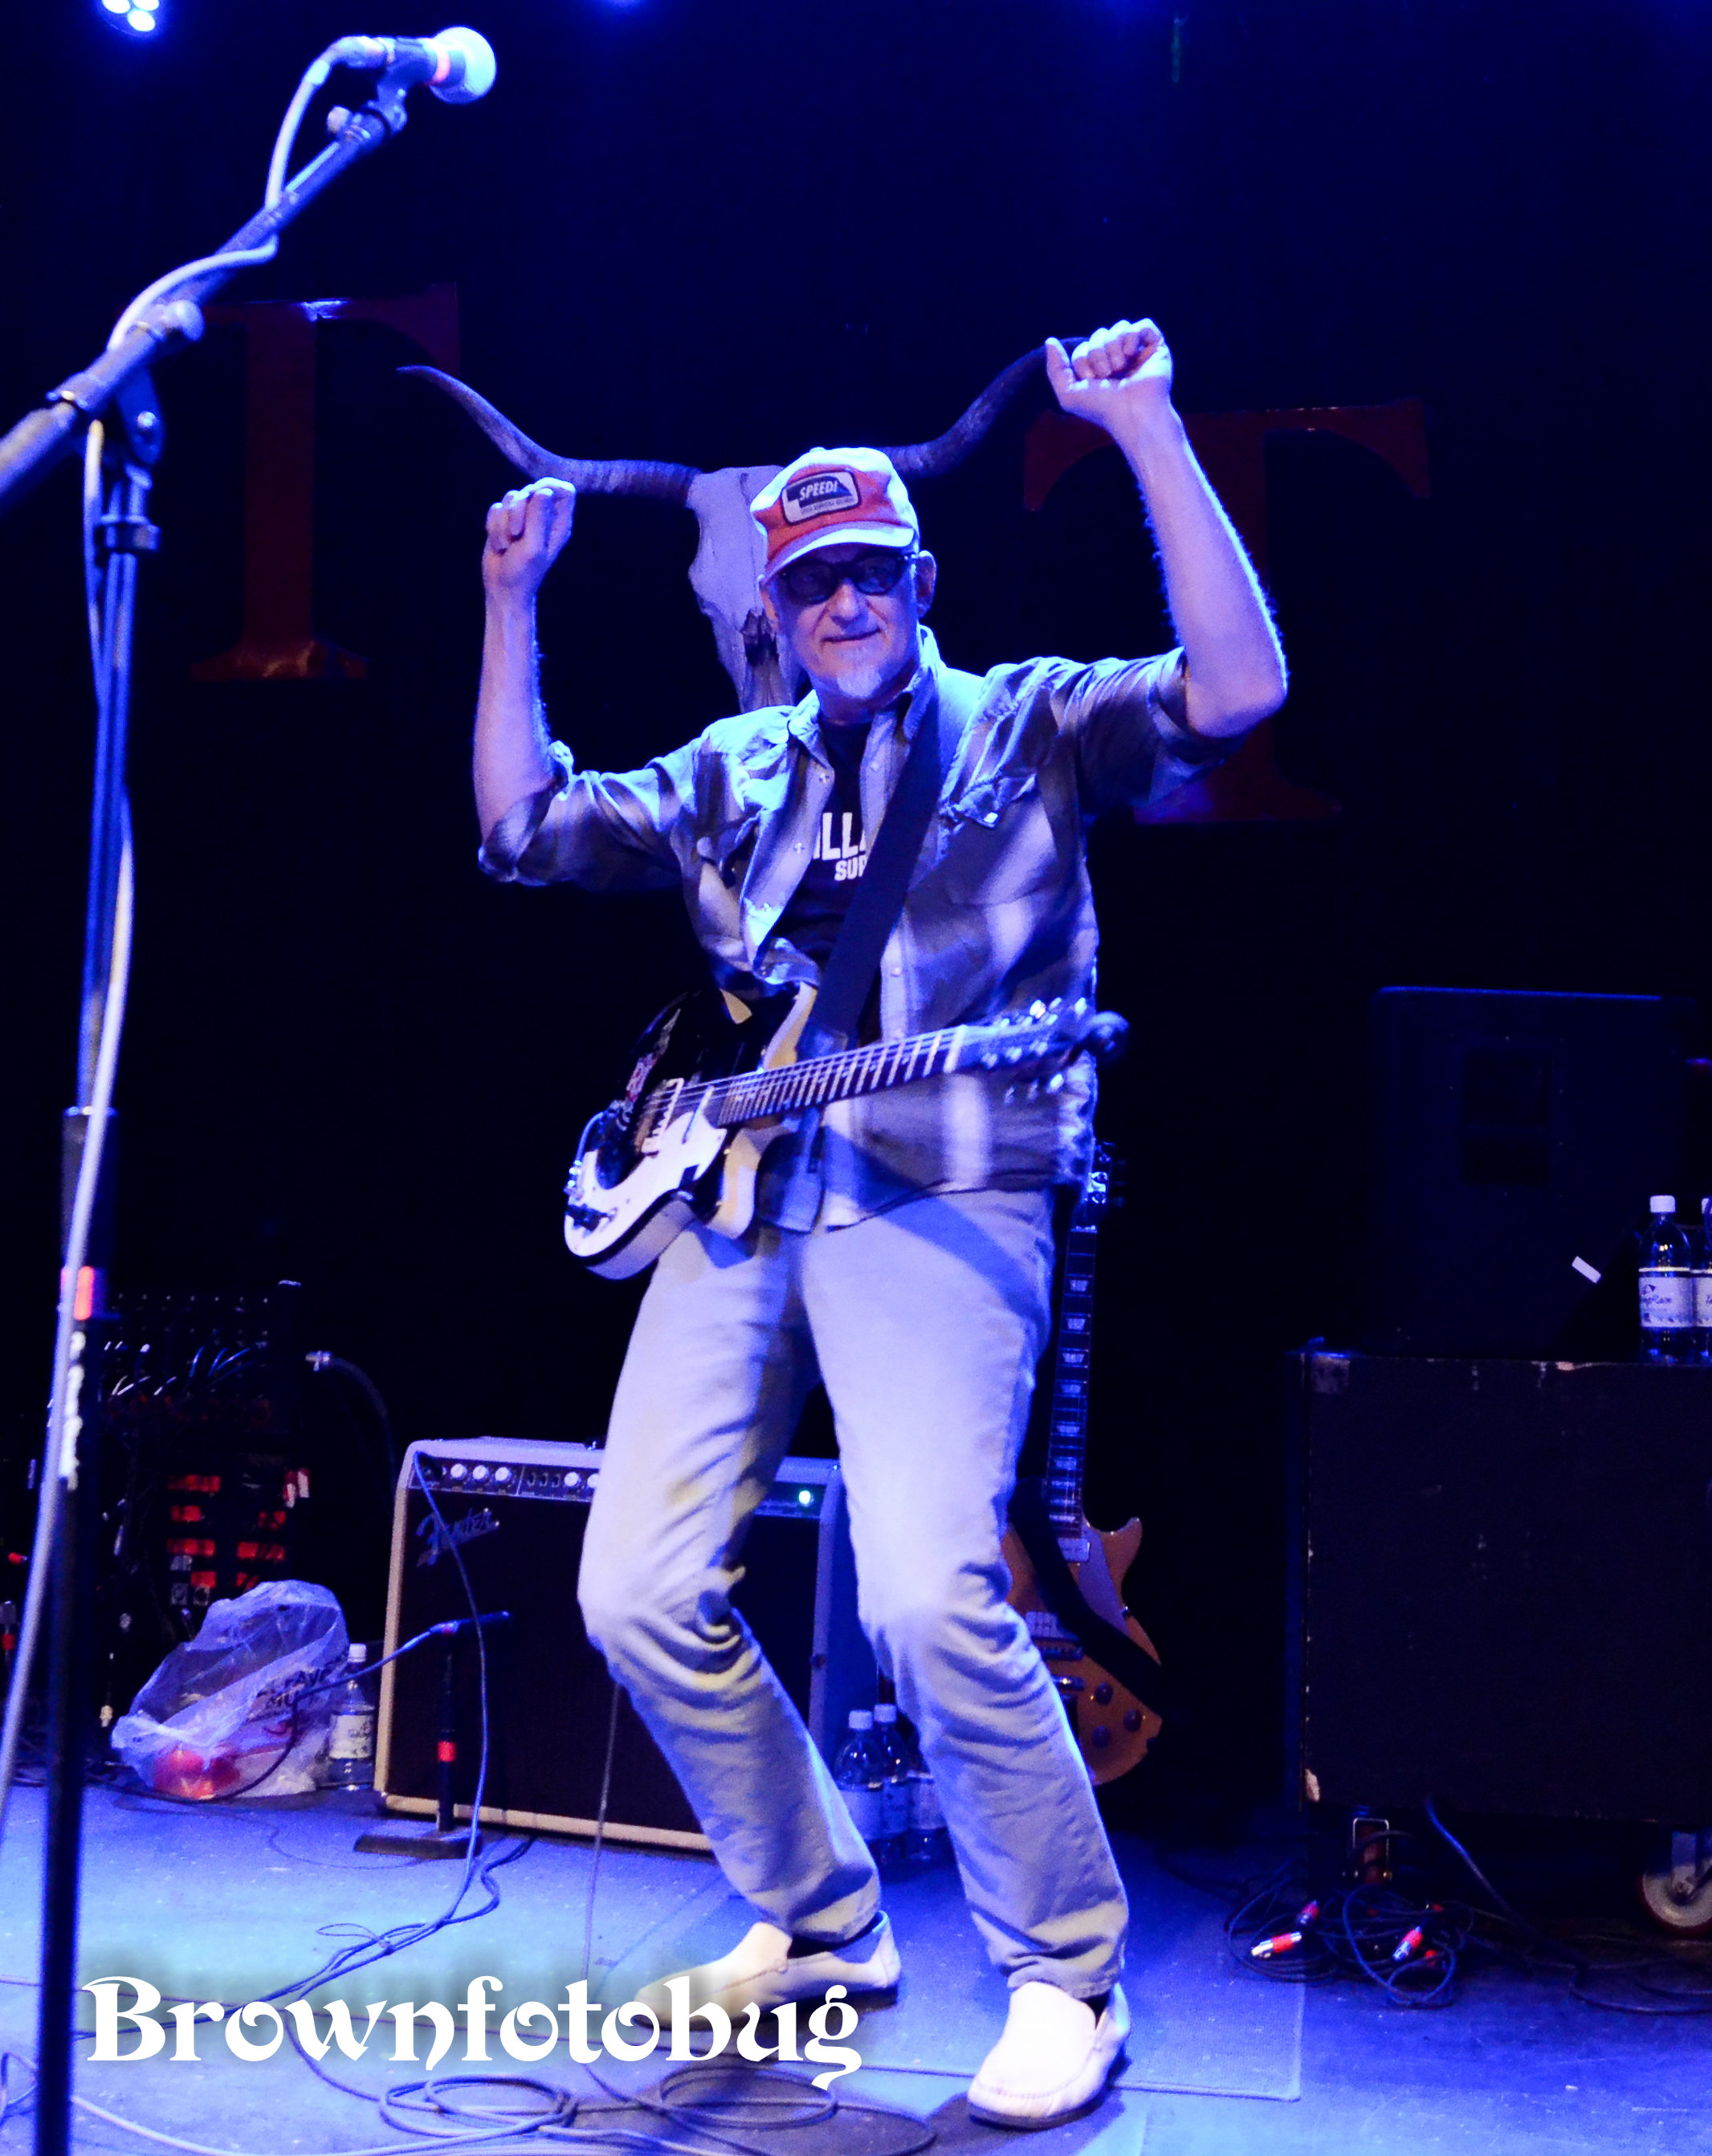 King of Hawaii and Southern Culture on the Skids (Photo by Arlene Brown)